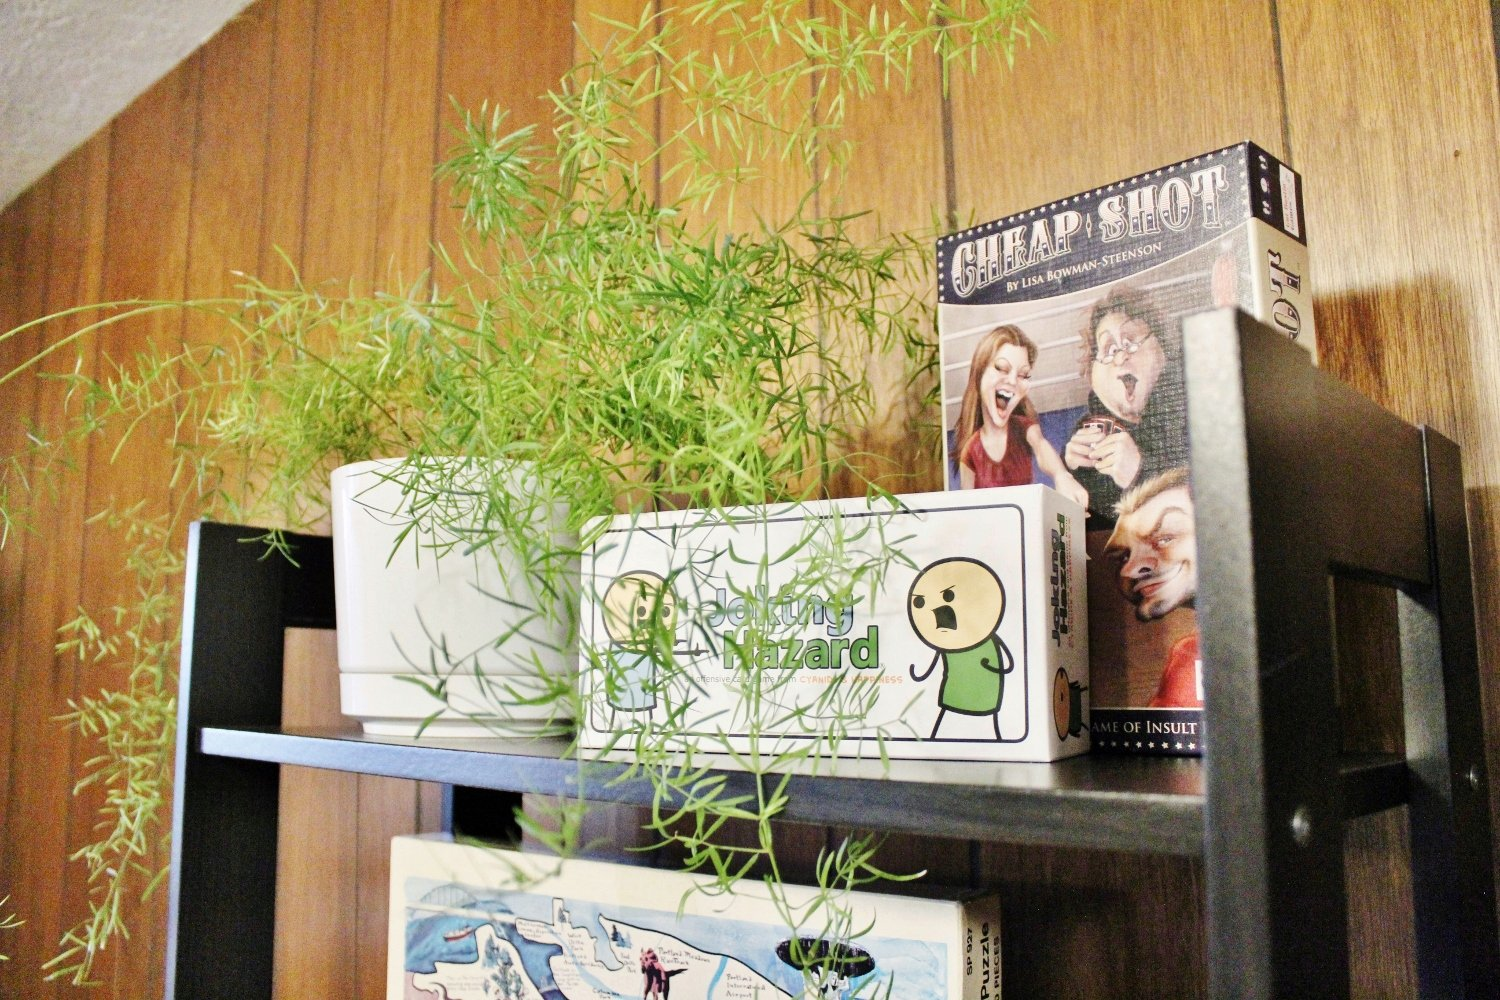 Here's a modern way to store and display your board games so they are easy to access and pretty to view, inspiring more game nights.